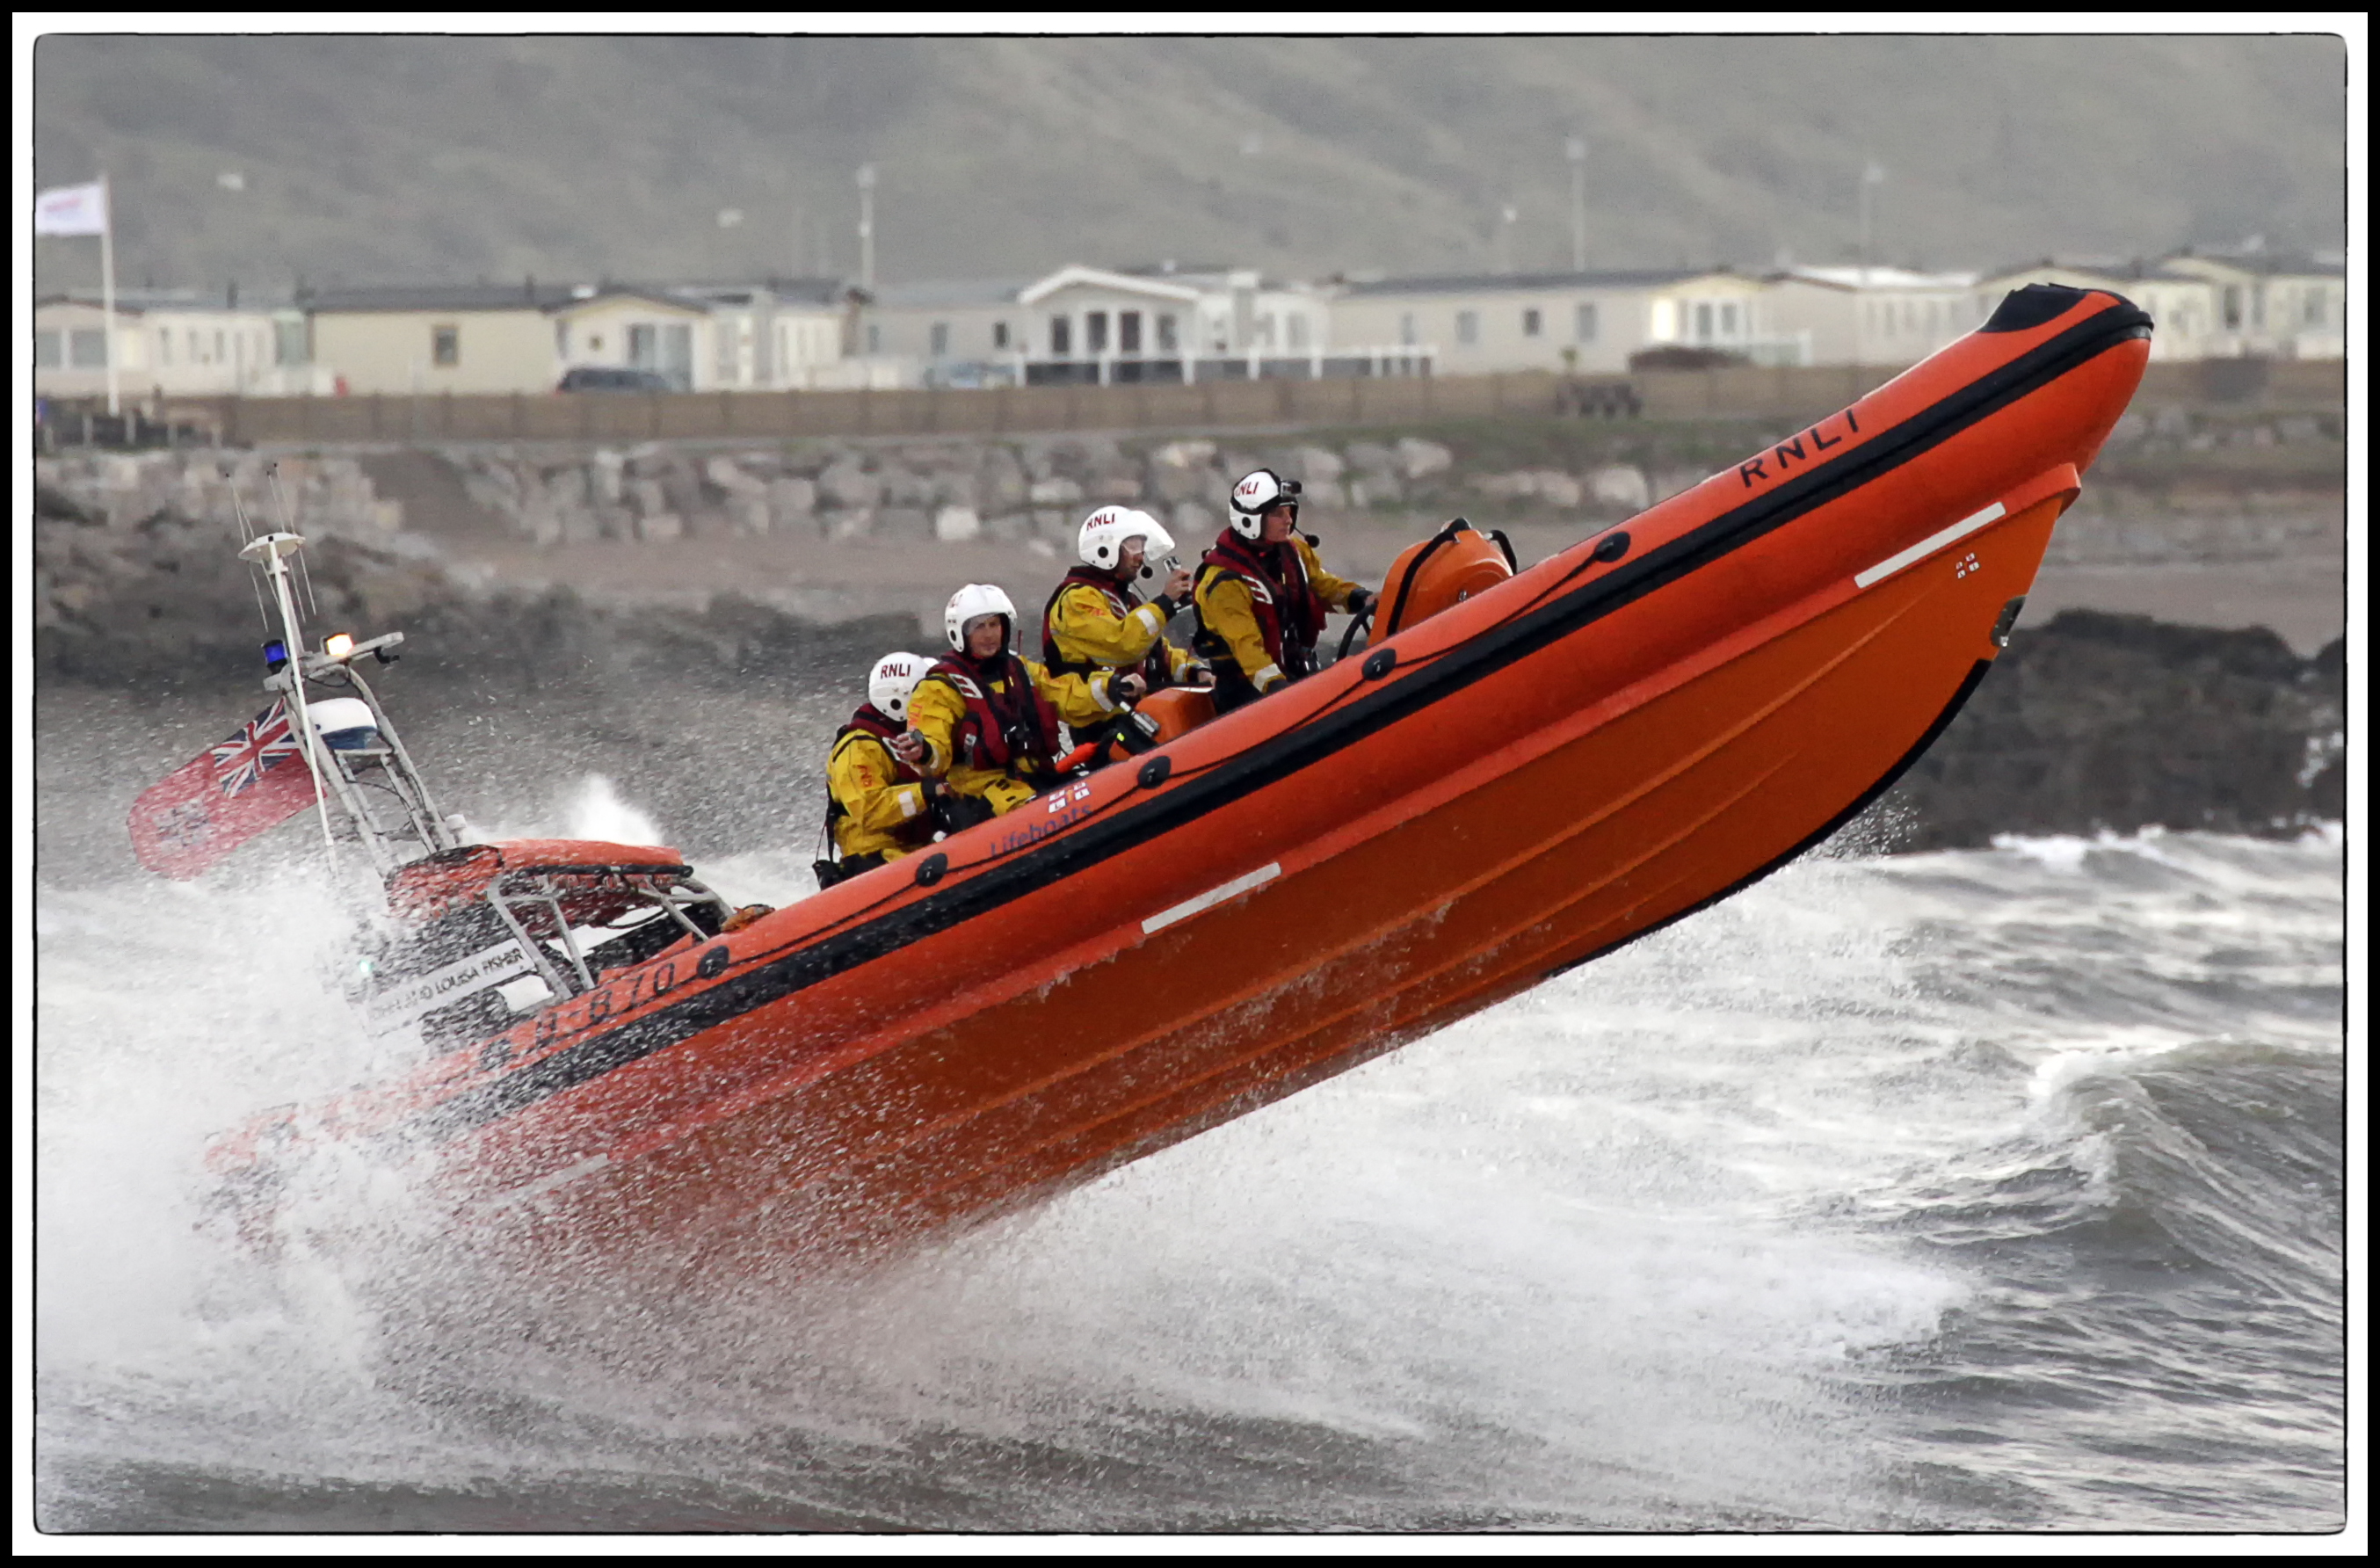 Lifeboat heading out through the surf at Sandy Bay, Porthcawl